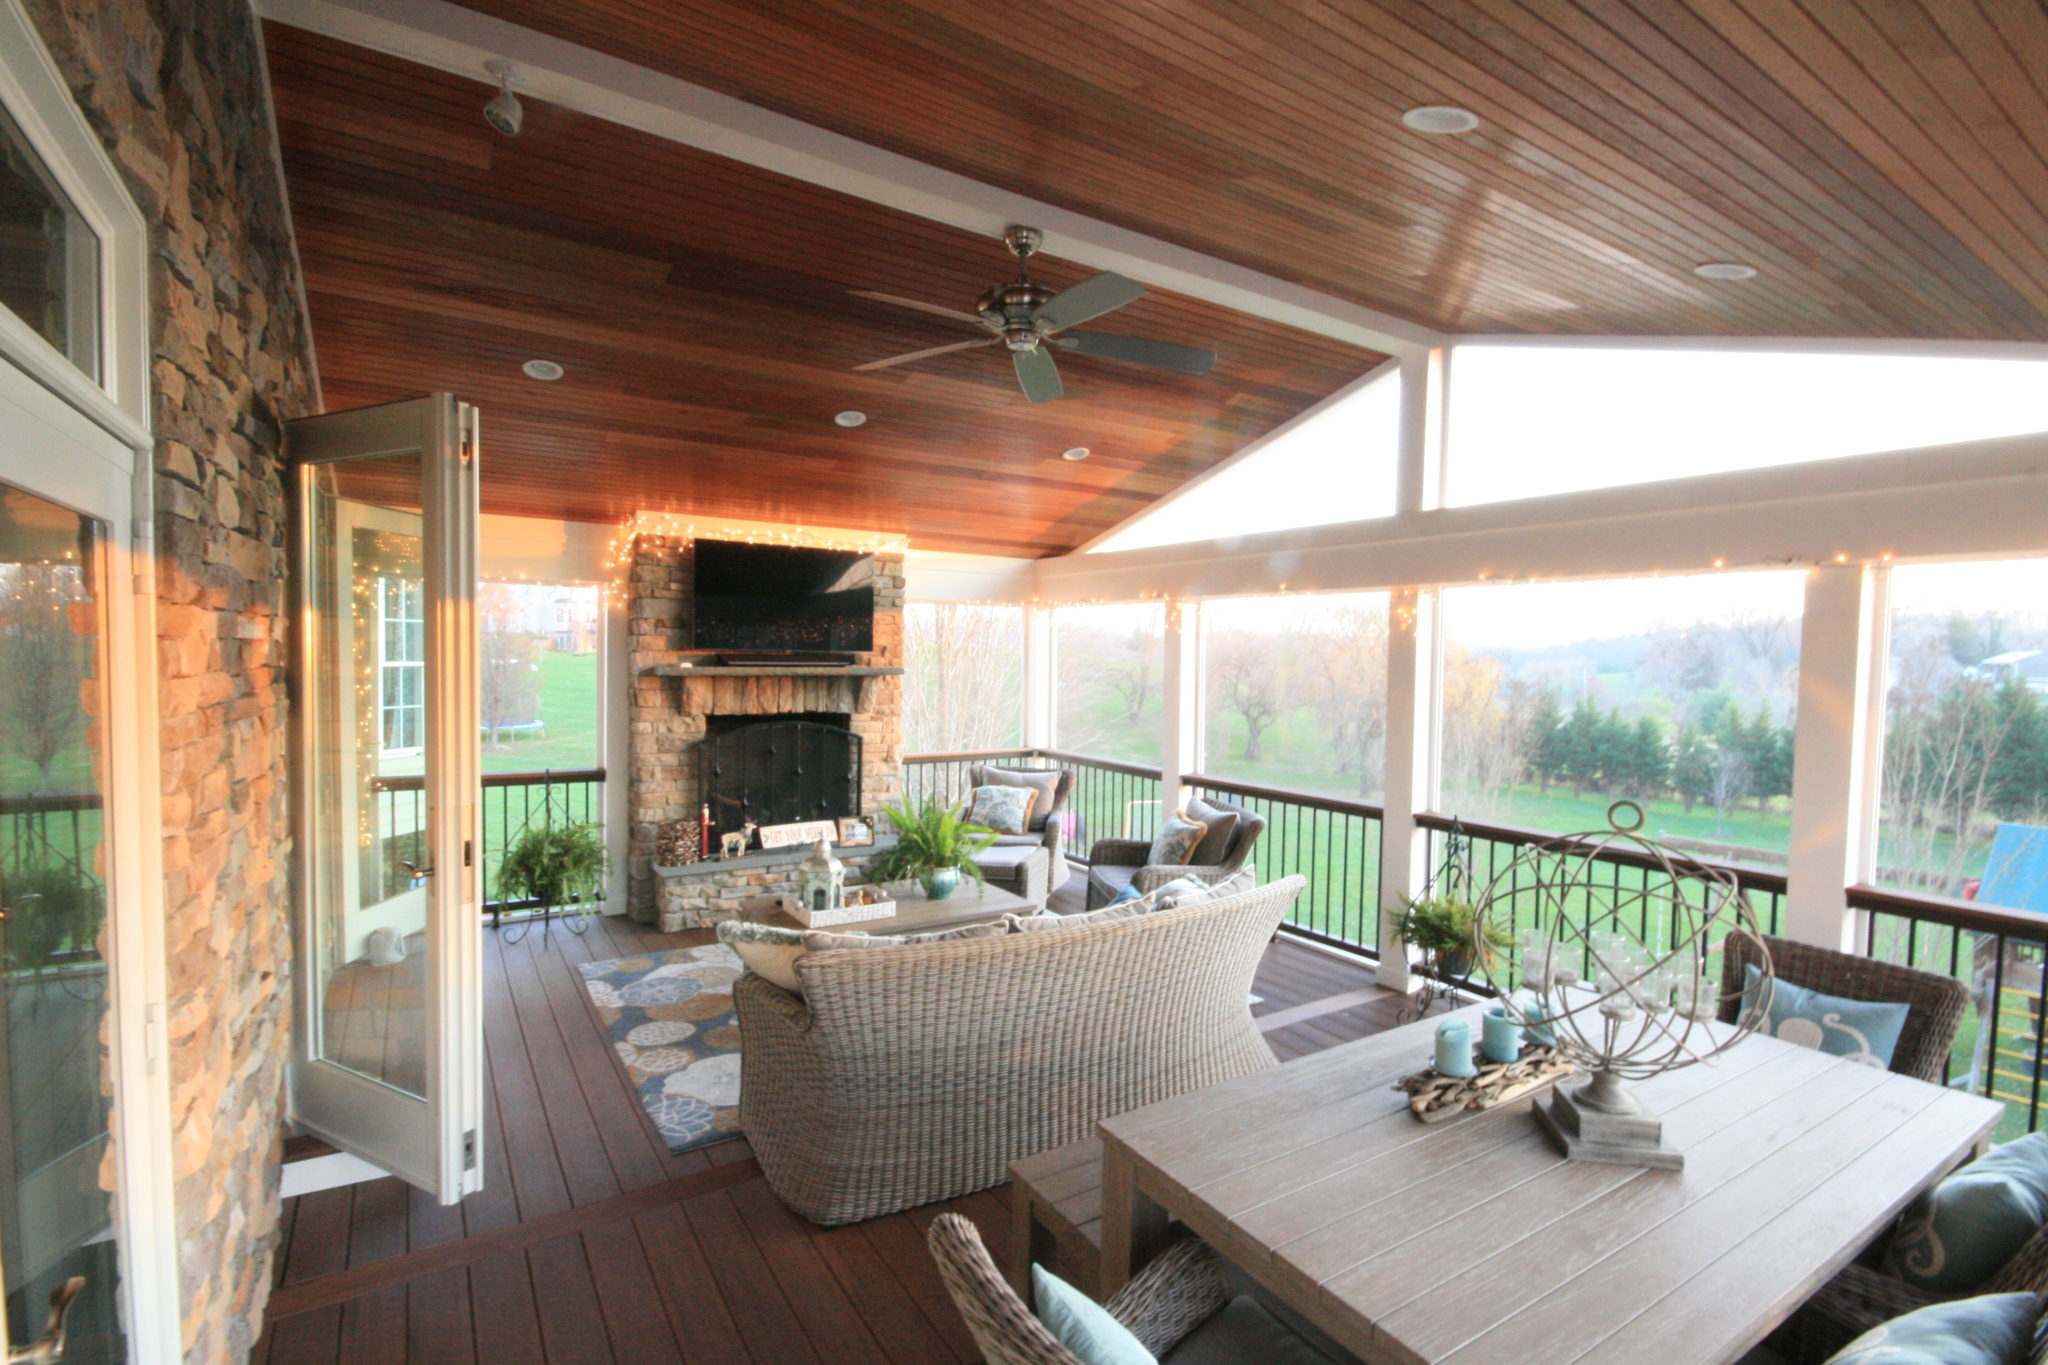 screen porch fireplace mahogany ceiling - Screened In Porch Design Ideas